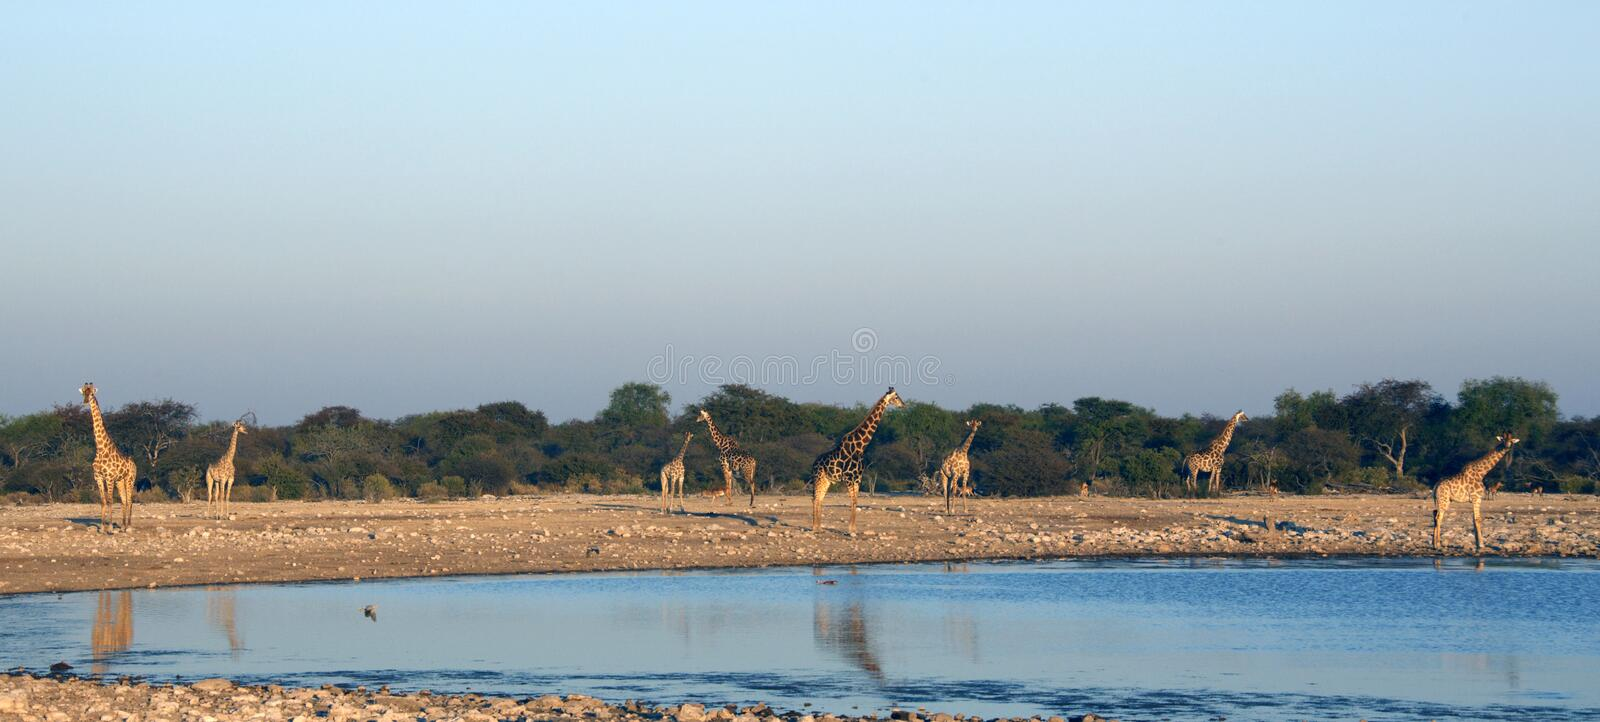 Giraffe at dusk by a waterhole in Namibia royalty free stock images